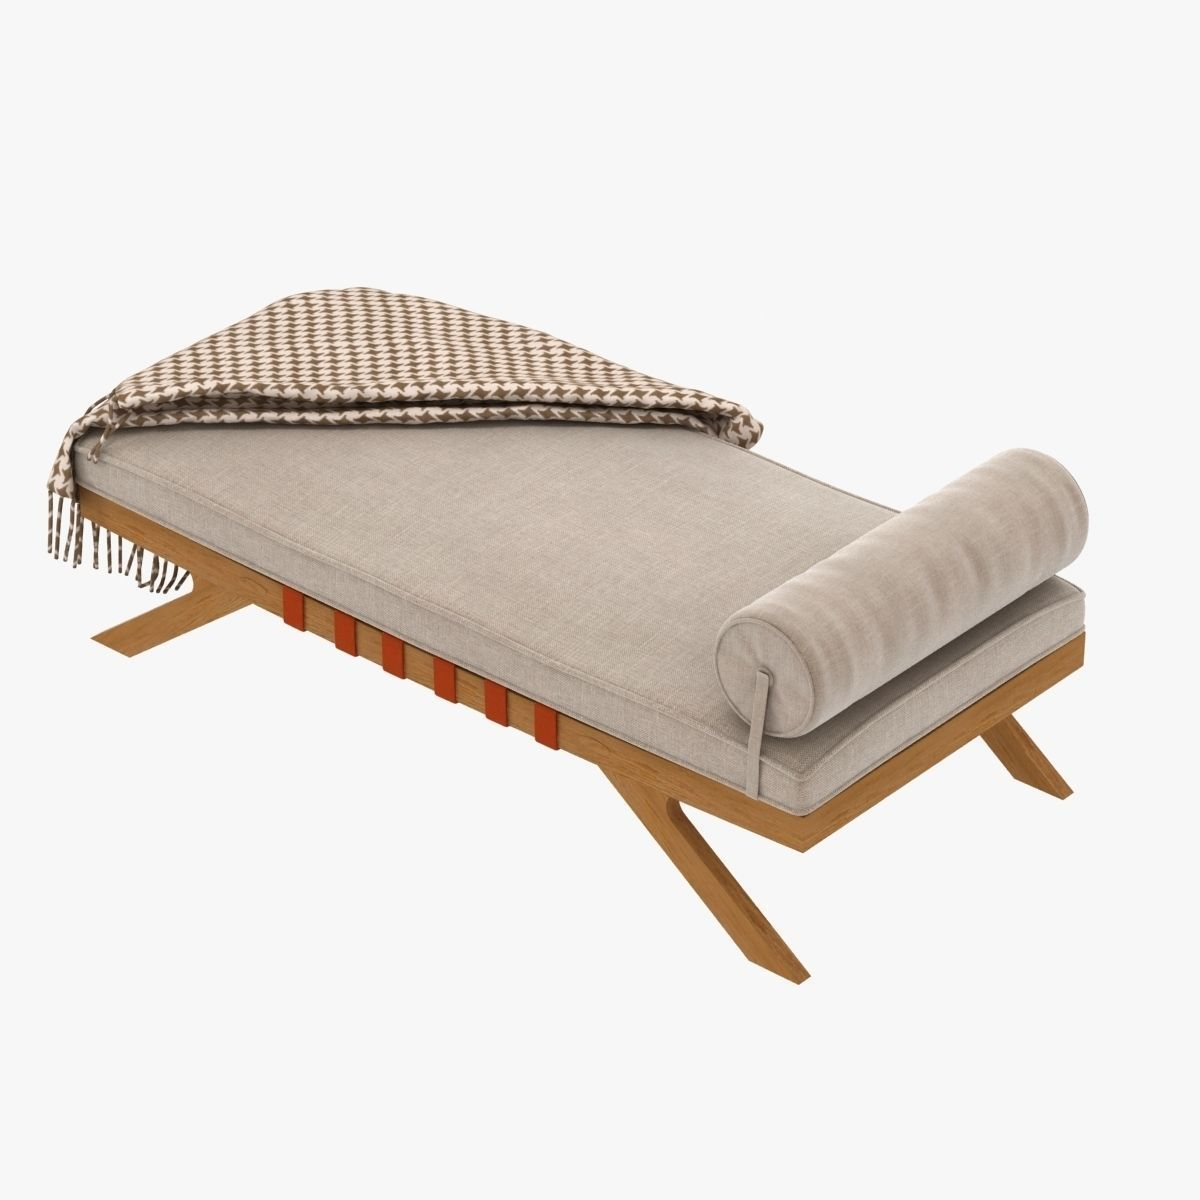 Mid century chaise lounge 3d model max obj 3ds fbx for Chaise modele